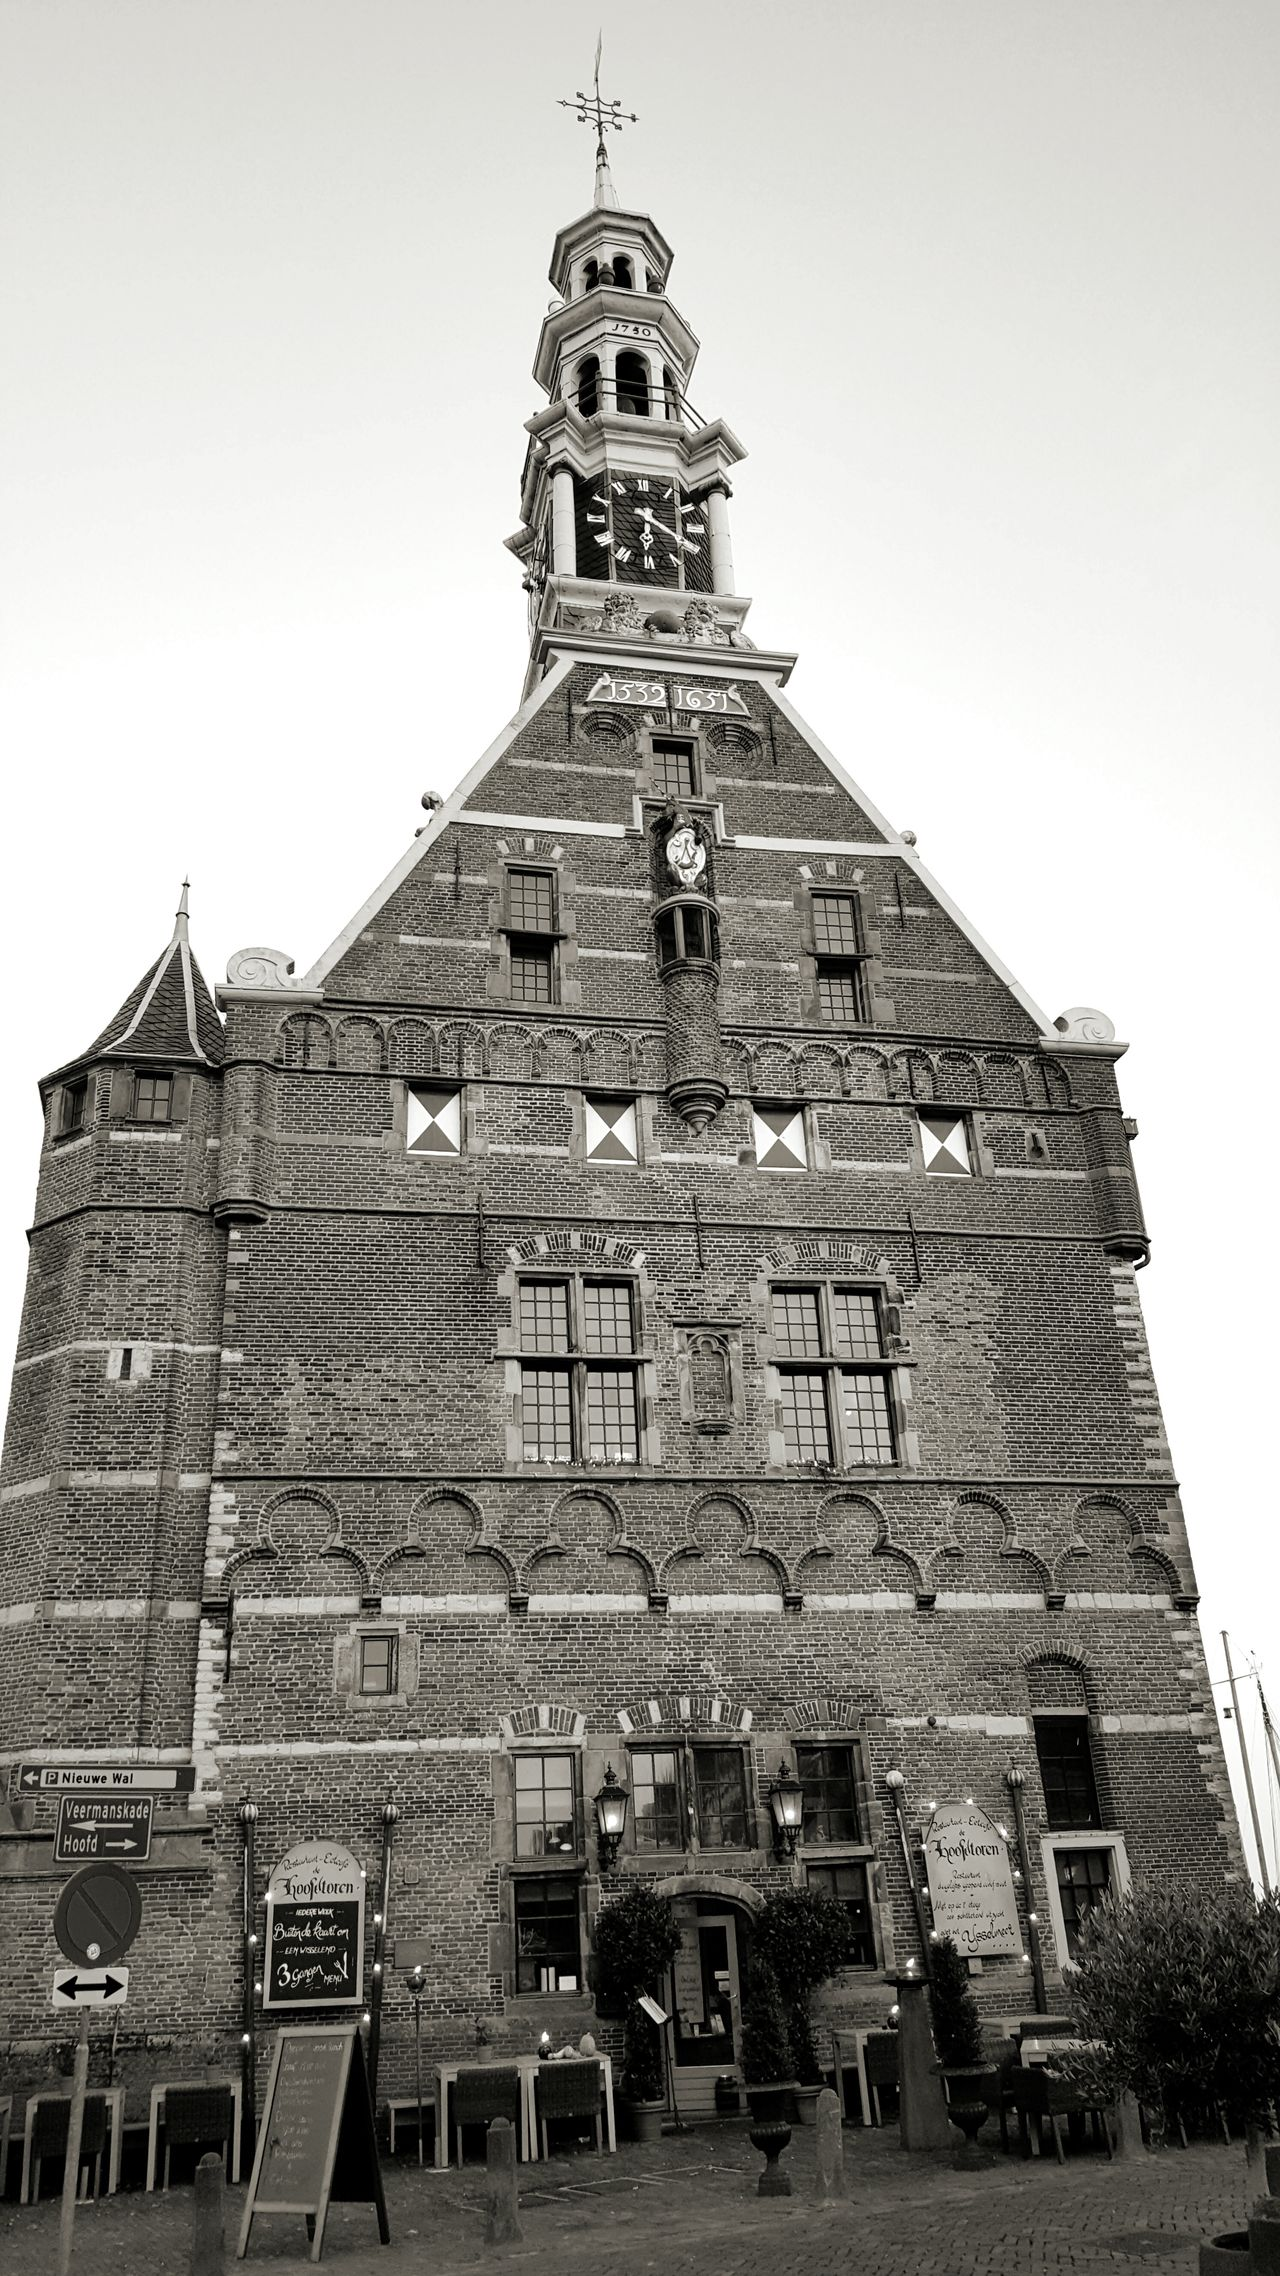 Architecture Building Exterior Built Structure Travel Destinations History Outdoors Amazing Architecture Architectural Detail Dutch House Old Buildings Old Town Architecture_collection Beautiful Hoorn Hoorn, Netherlands Netherlands Taking Pictures Taking Photos Black And White Blackandwhite City Exploring New Ground Dutch Architecture Dutch Cities Windows